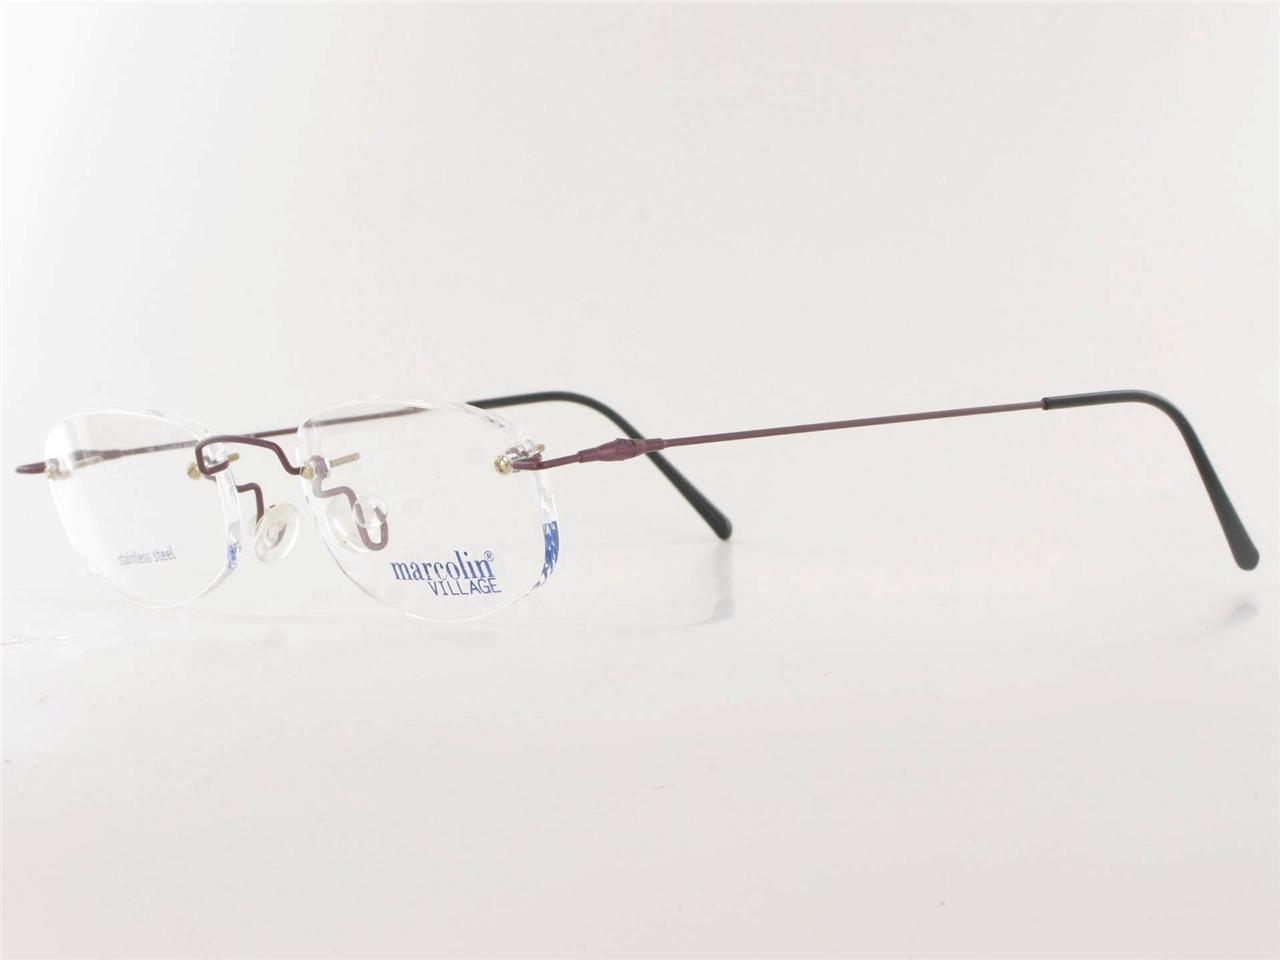 Marcolin Rimless Metal Eyeglass Frame Burgundy Mens Womens ...